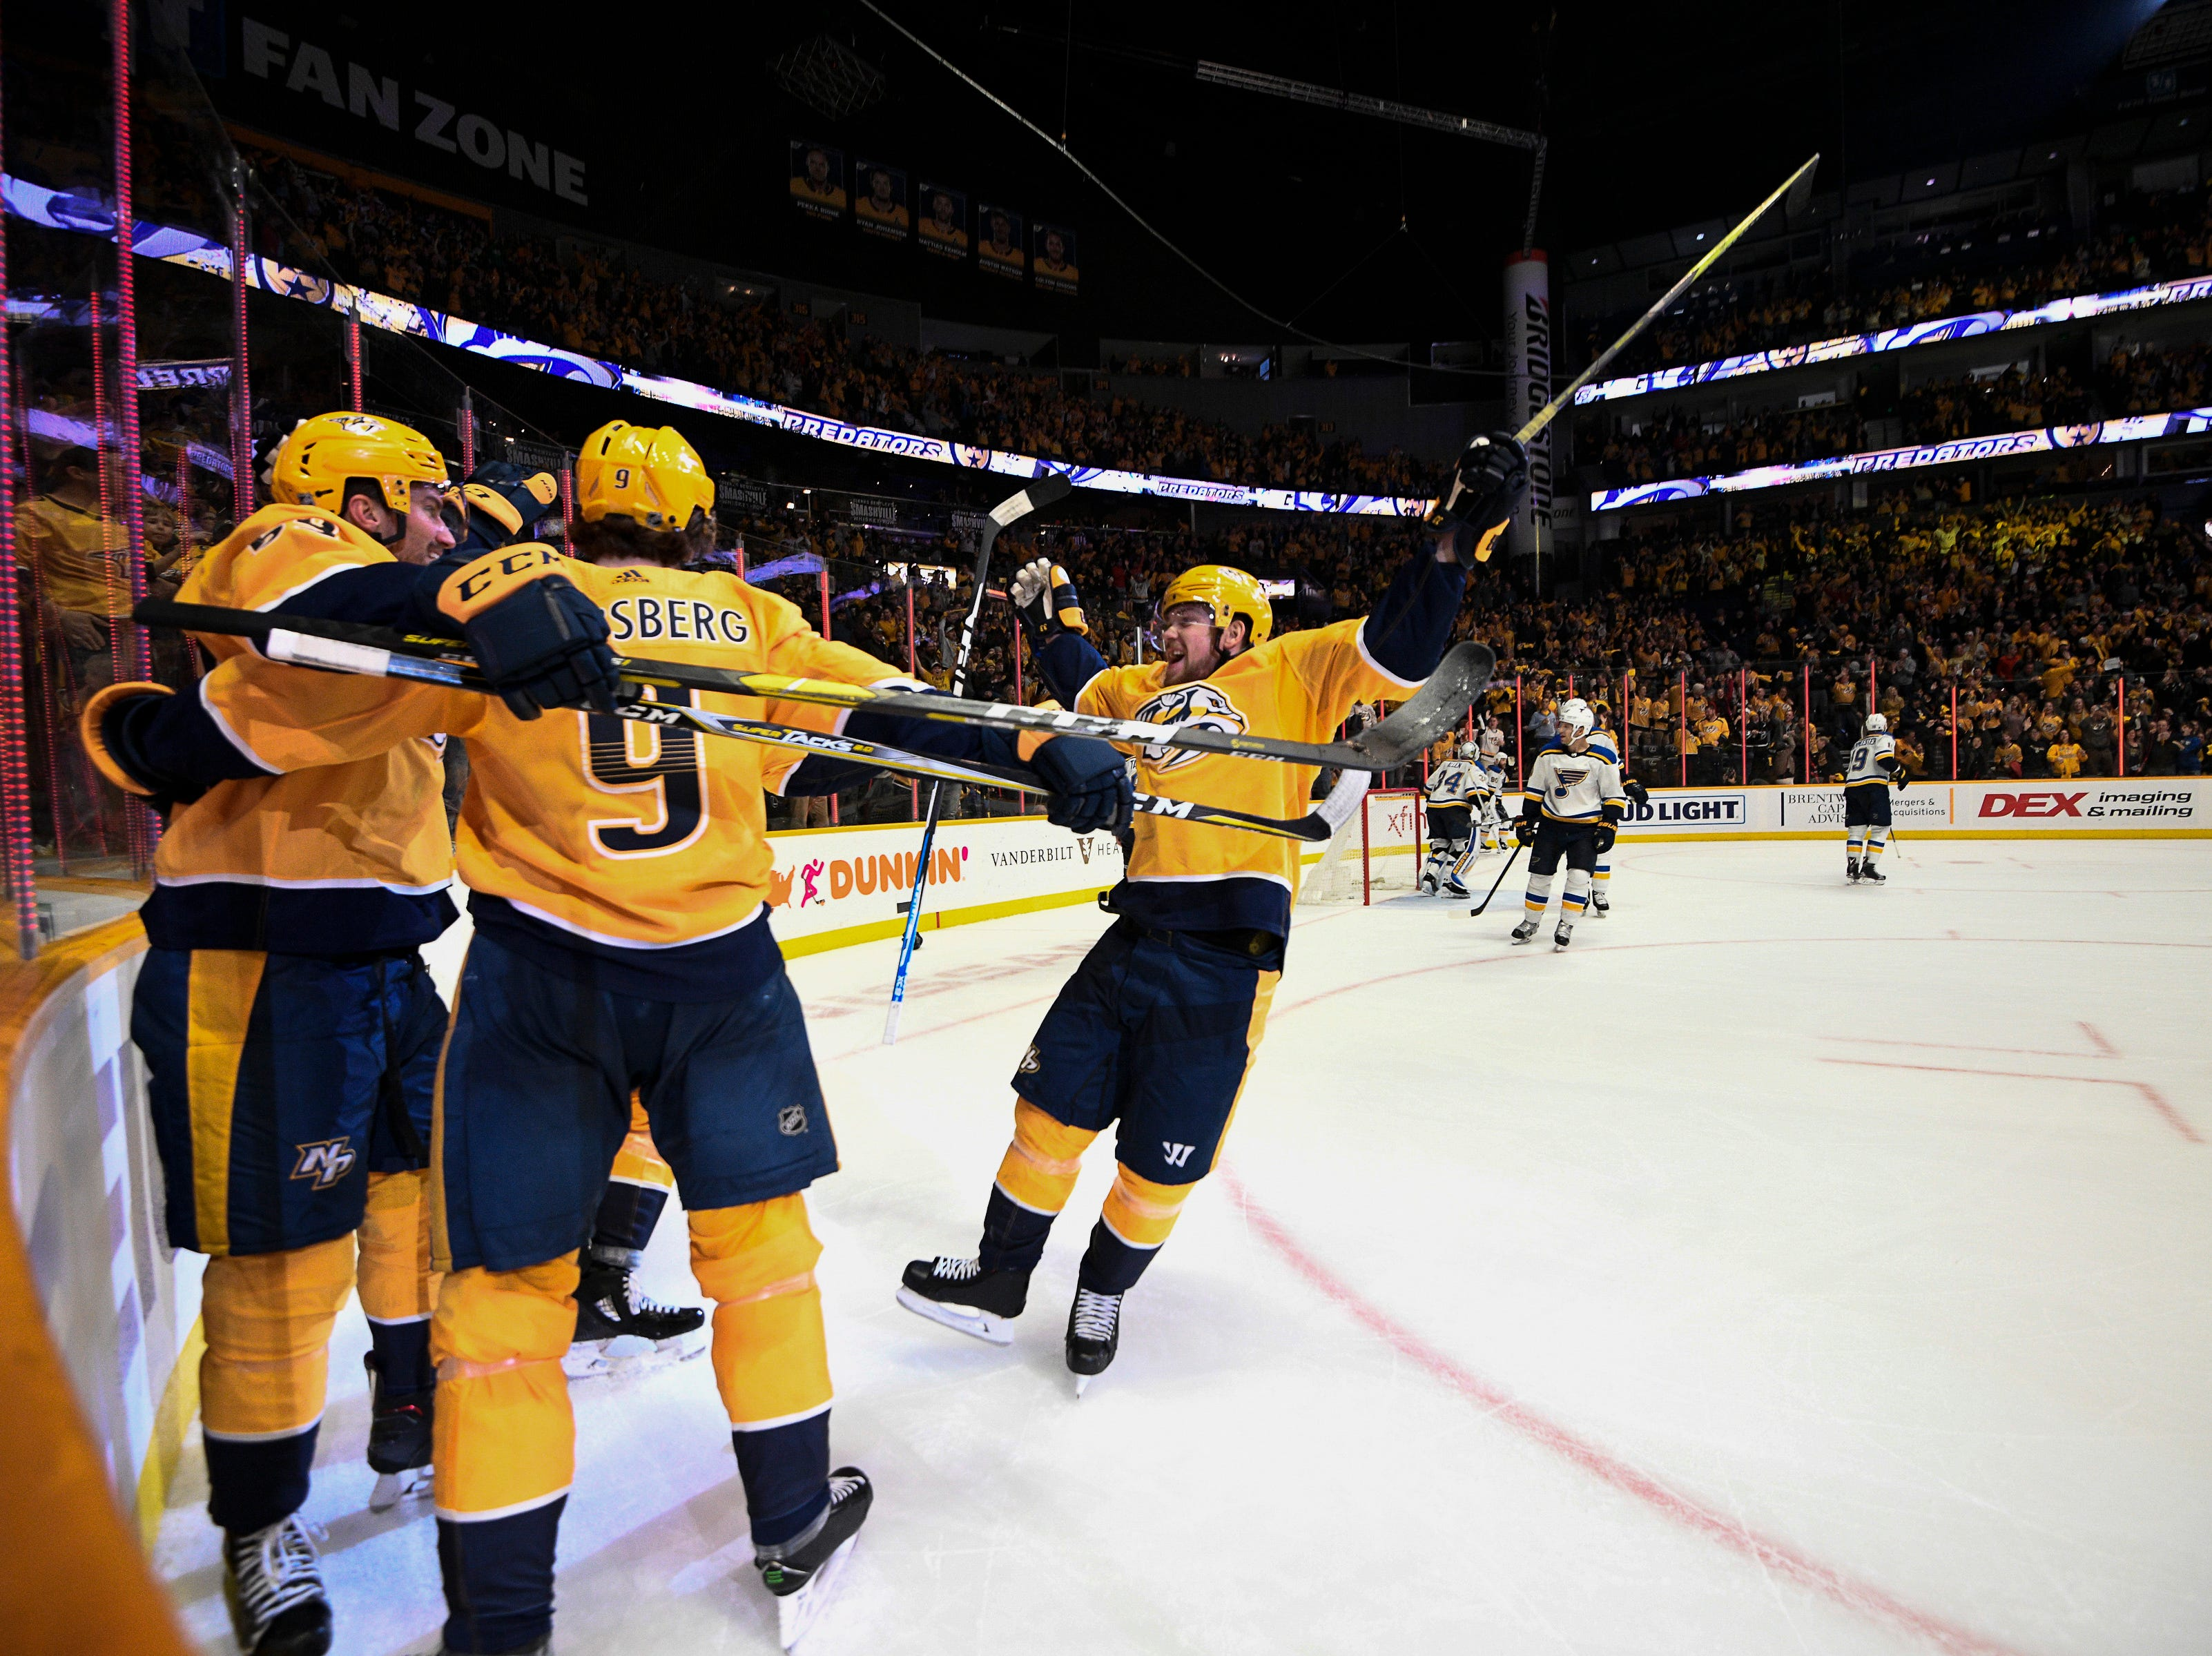 Predators right wing Viktor Arvidsson (33) congratulates left wing Filip Forsberg (9) after his goal against the Blues during the third period at Bridgestone Arena Sunday Feb. 10, 2019 in Nashville, Tenn.